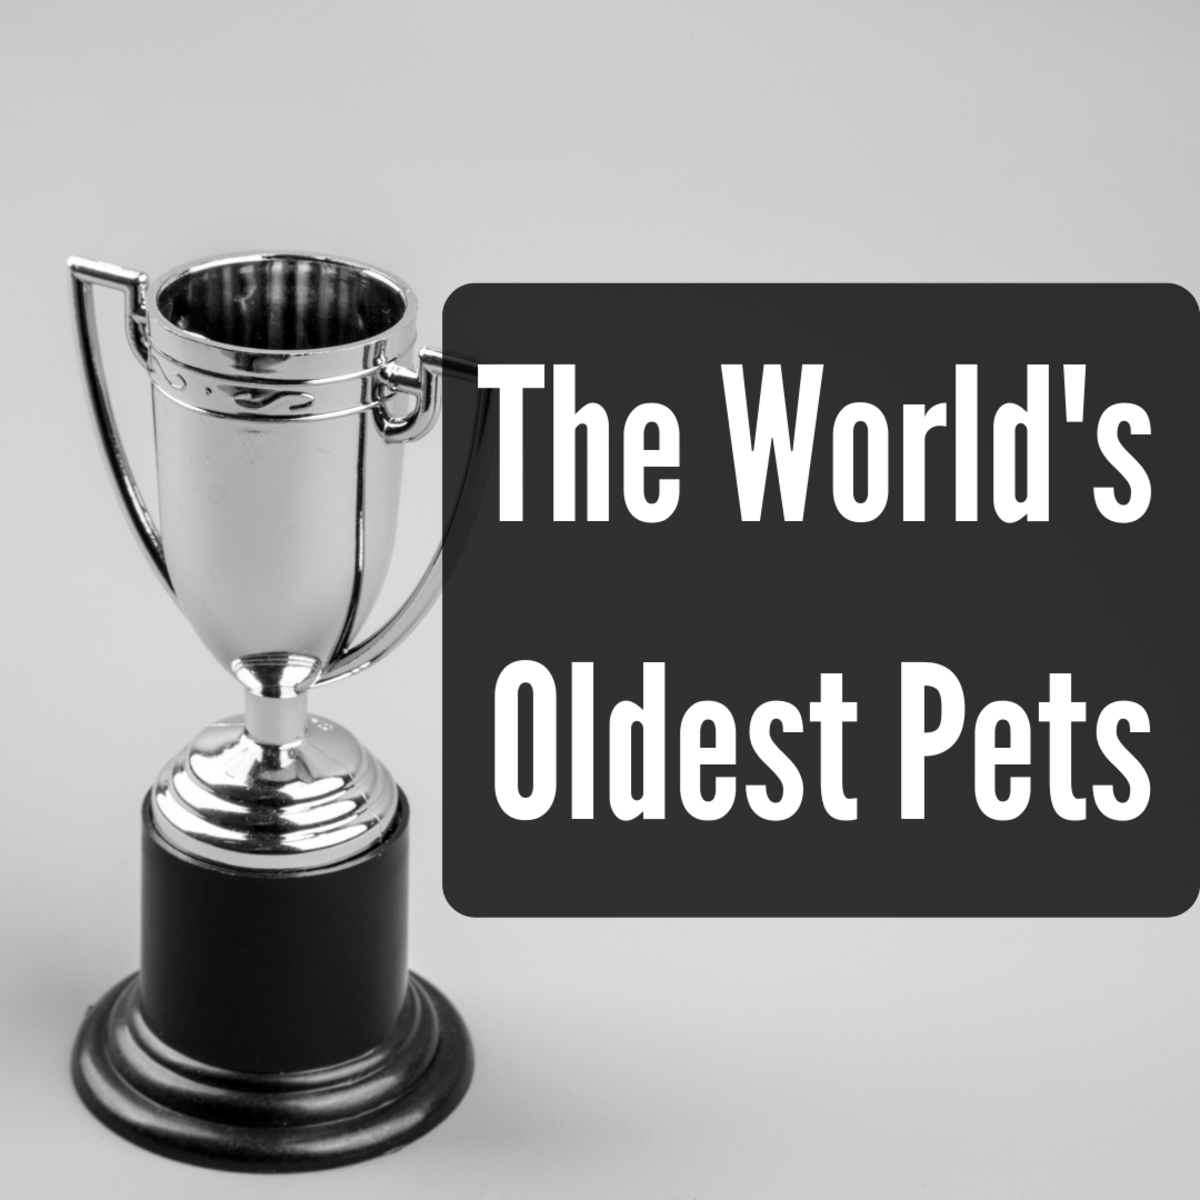 Meeting the World's Oldest Pets